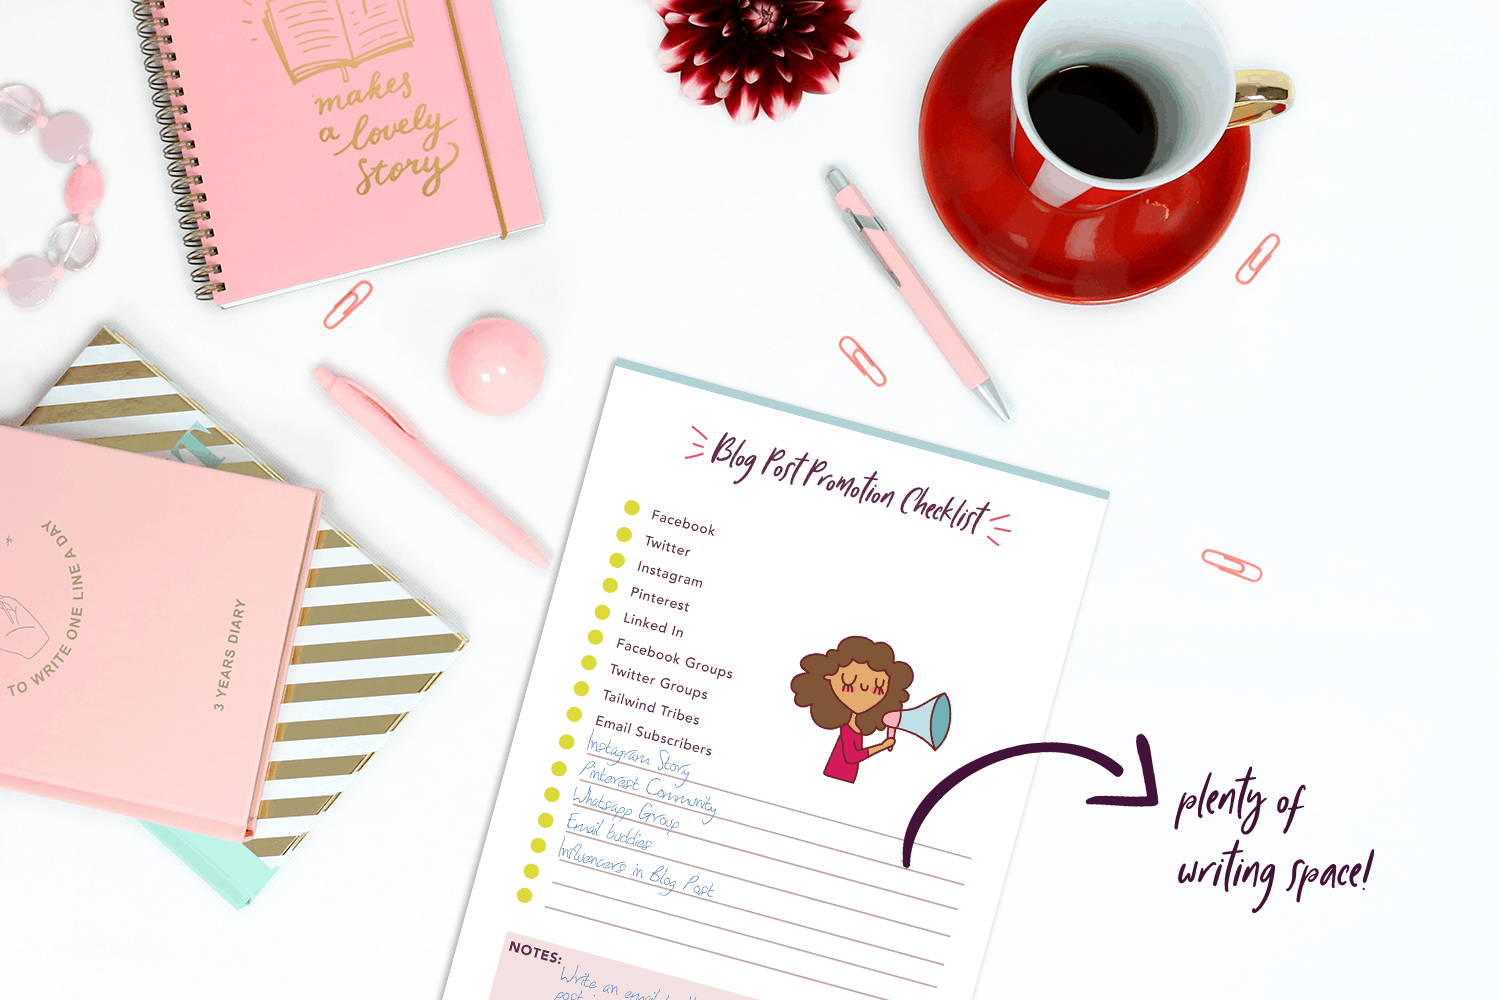 This blog planner is super cute and has tons of space to write everything you want to in order to grow your blog.